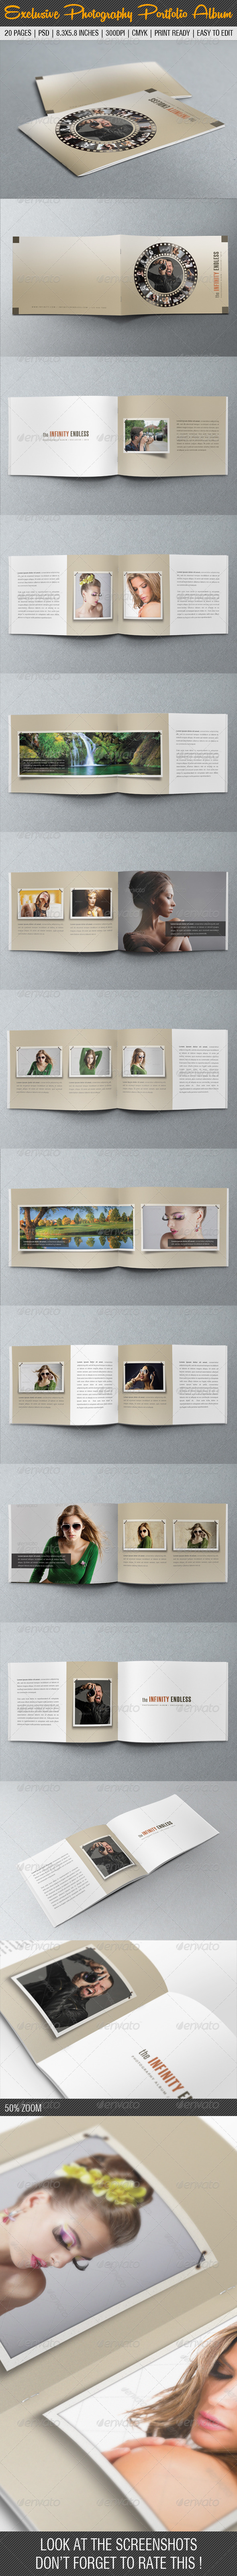 GraphicRiver Exclusive Photography Portfolio Album 04 6620984